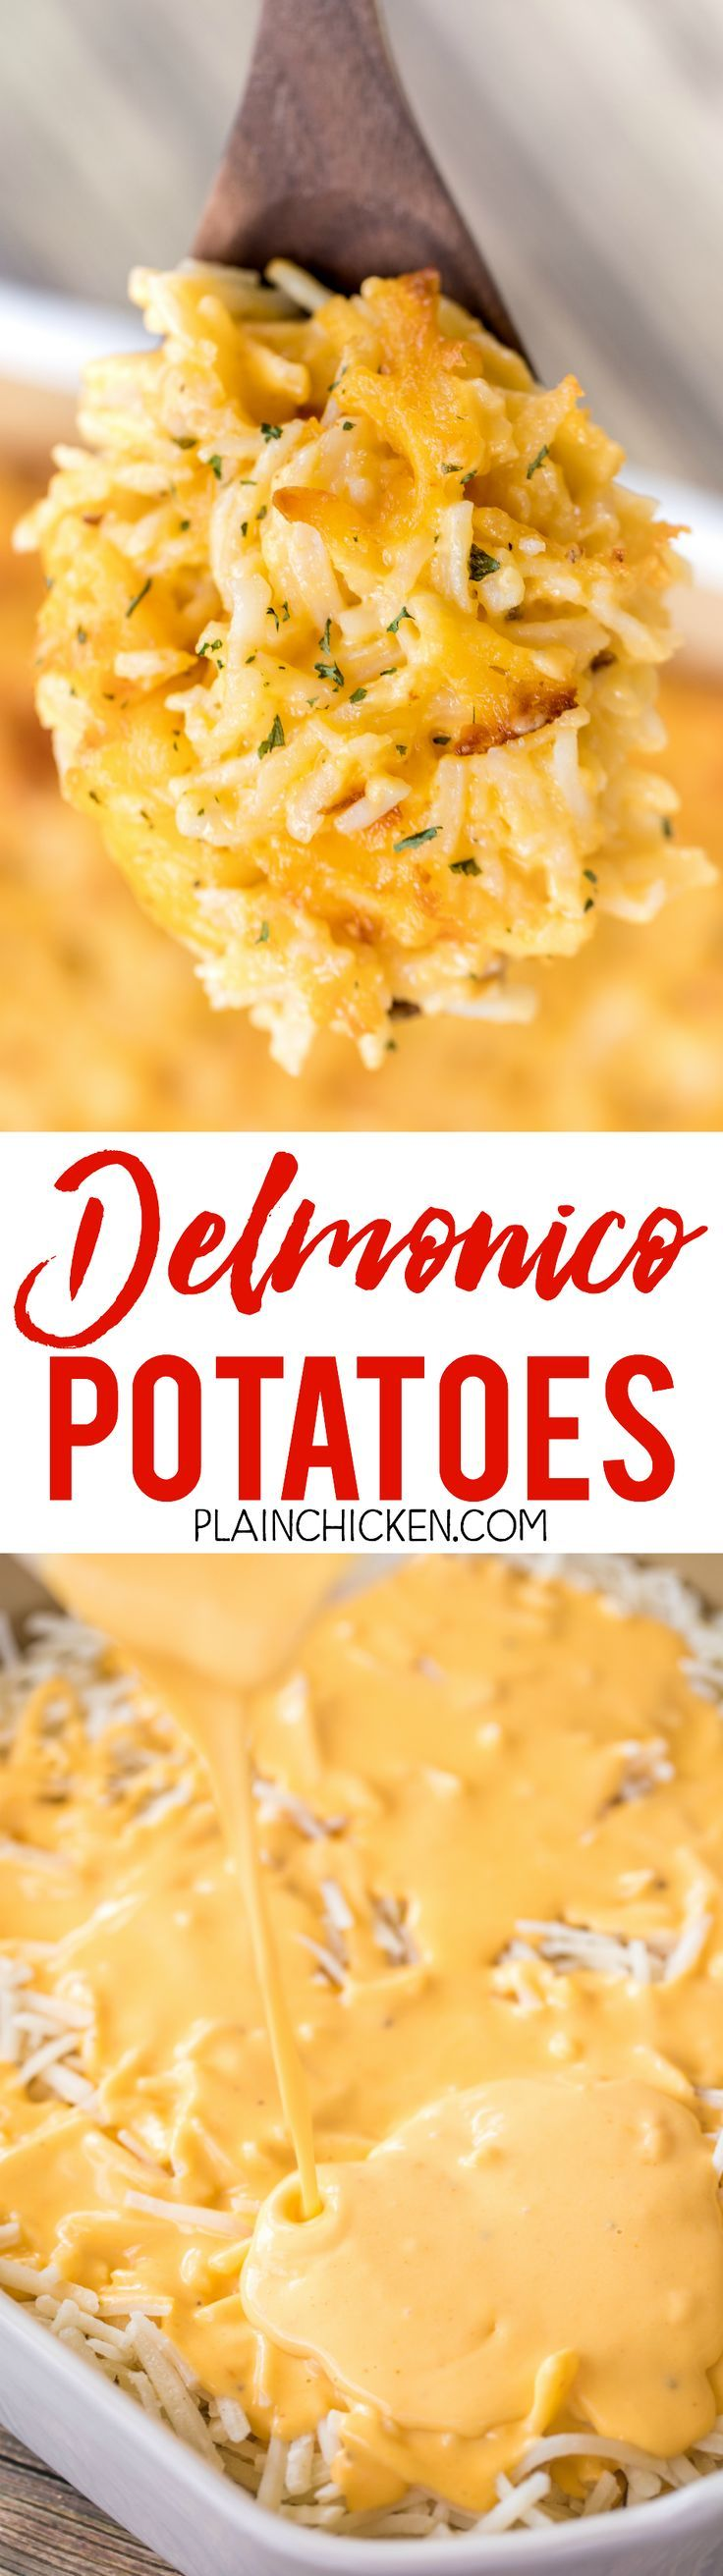 Delmonico Potatoes - the most AMAZING potatoes EVER!!! We have made these 3 times in the last month. They are simply the BEST!!! They are also super easy to make. You can make them ahead of time and refrigerate or freeze for later. Frozen hash brown potat